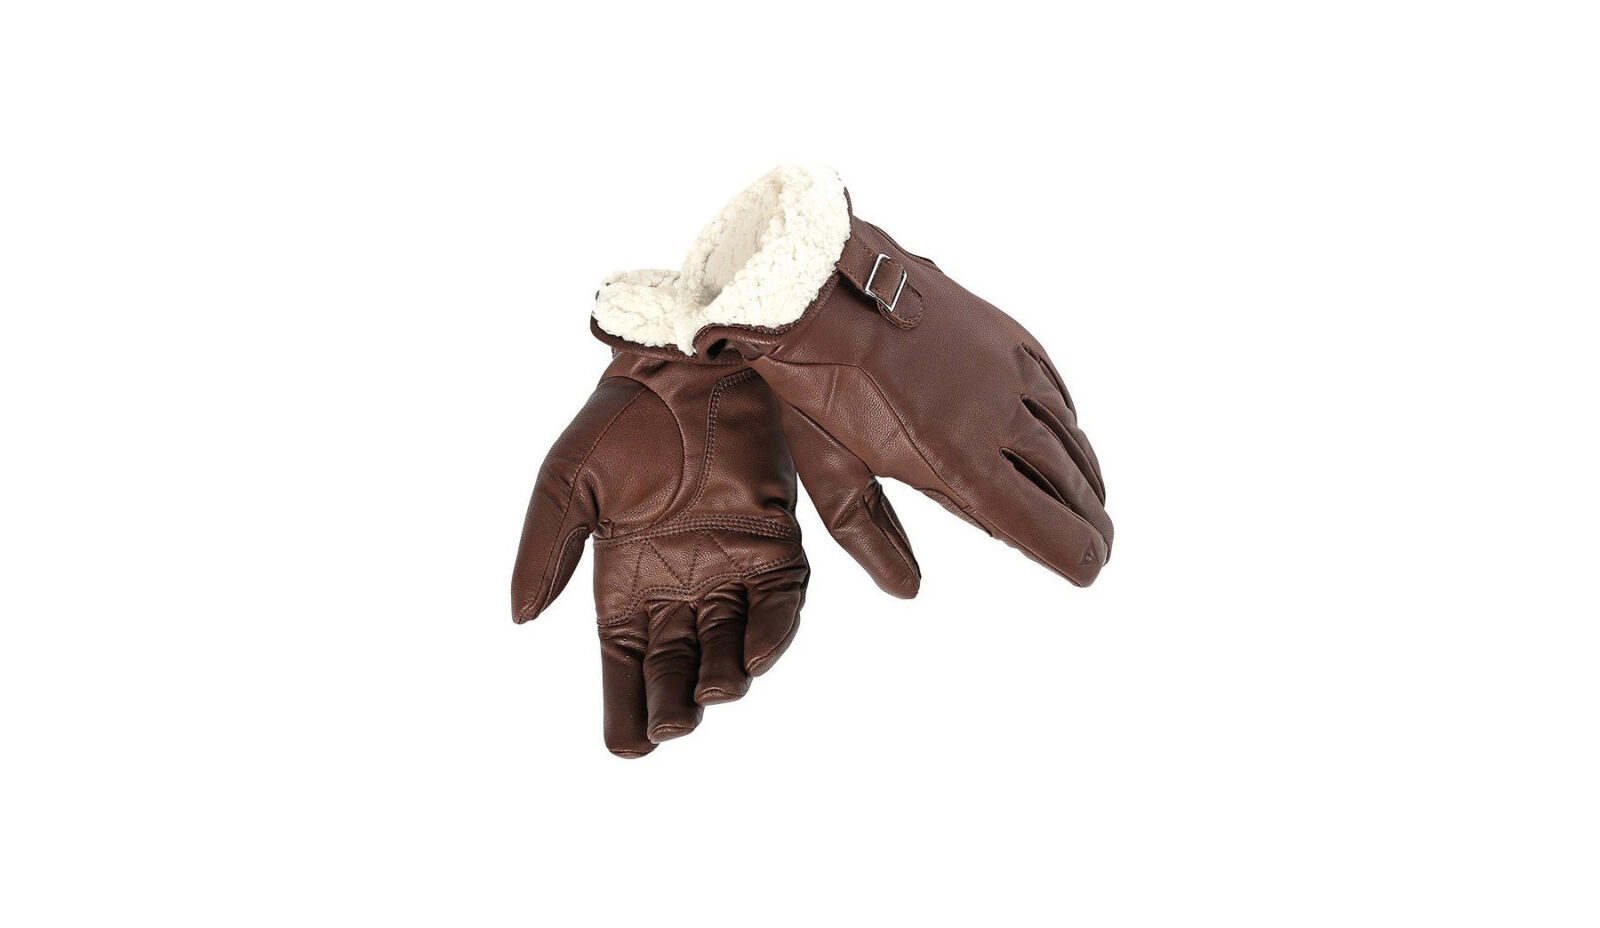 Dainese Freeman Motorcycle Gloves 1600x928 - Dainese Freeman Motorcycle Gloves